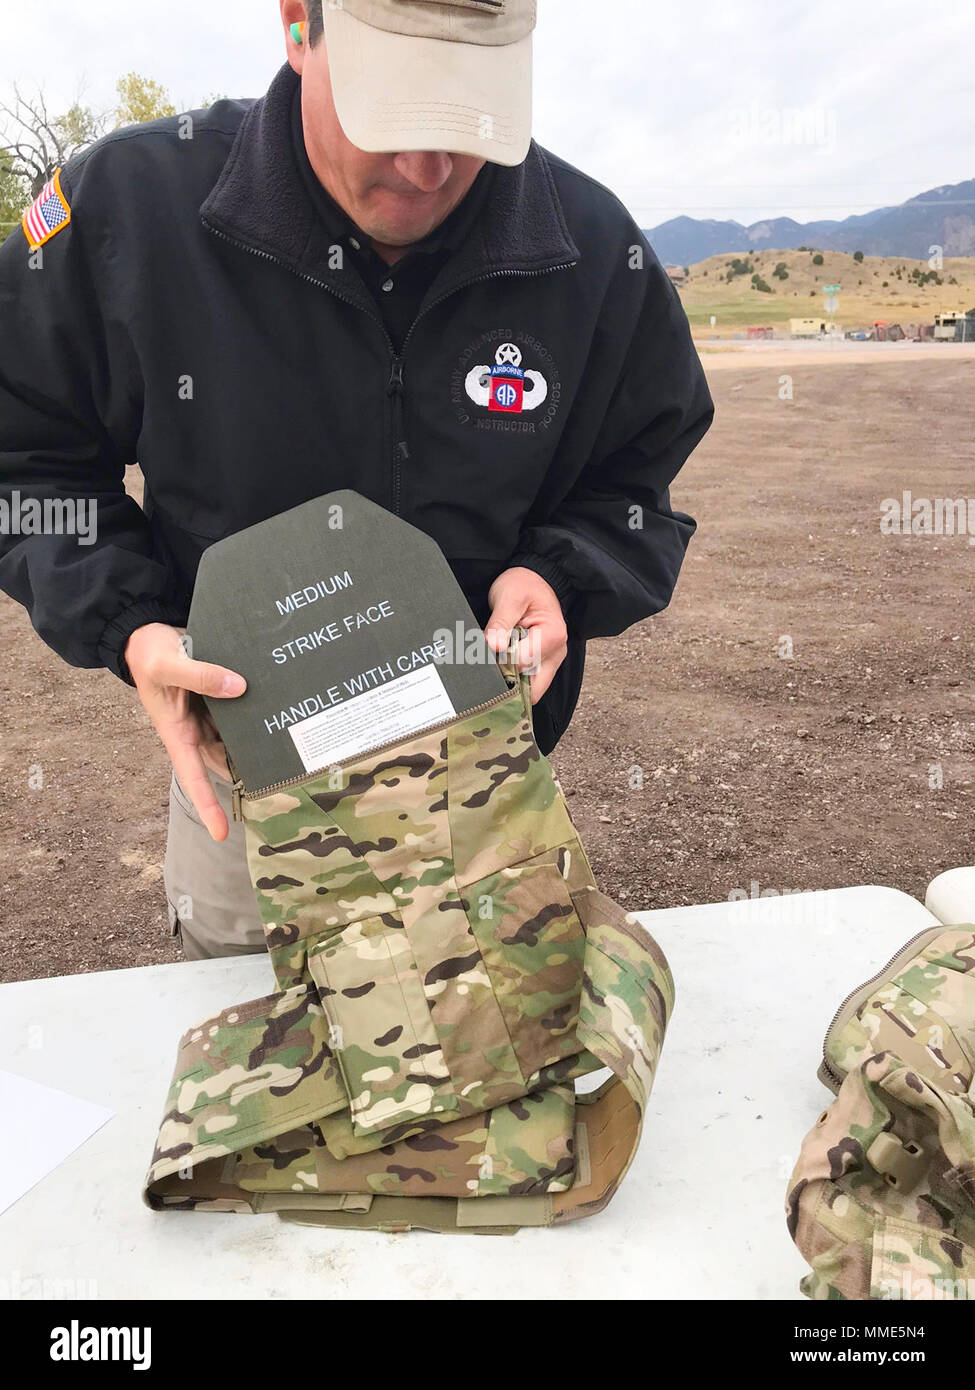 Michael Spencer, a new equipment trainer from Project Manager Soldier Protection Individual Equipment at Fort Bragg, N.C., demonstrates how to transfer ballistic plates from the Modular Scalable Vest (MSV) to a plate carrier configuration enclosed within the MSV, during the final round of field-testing of the vest at Fort Carson, Colo., Oct. 18, 2017. Once this evaluation is complete, the vest will go into production and is expected to reach Soldiers in the field by summer of next year. (U.S. Army photo by Staff Sgt. Lance Pounds, 71st Ordnance Group (EOD), Public Affairs) - Stock Image